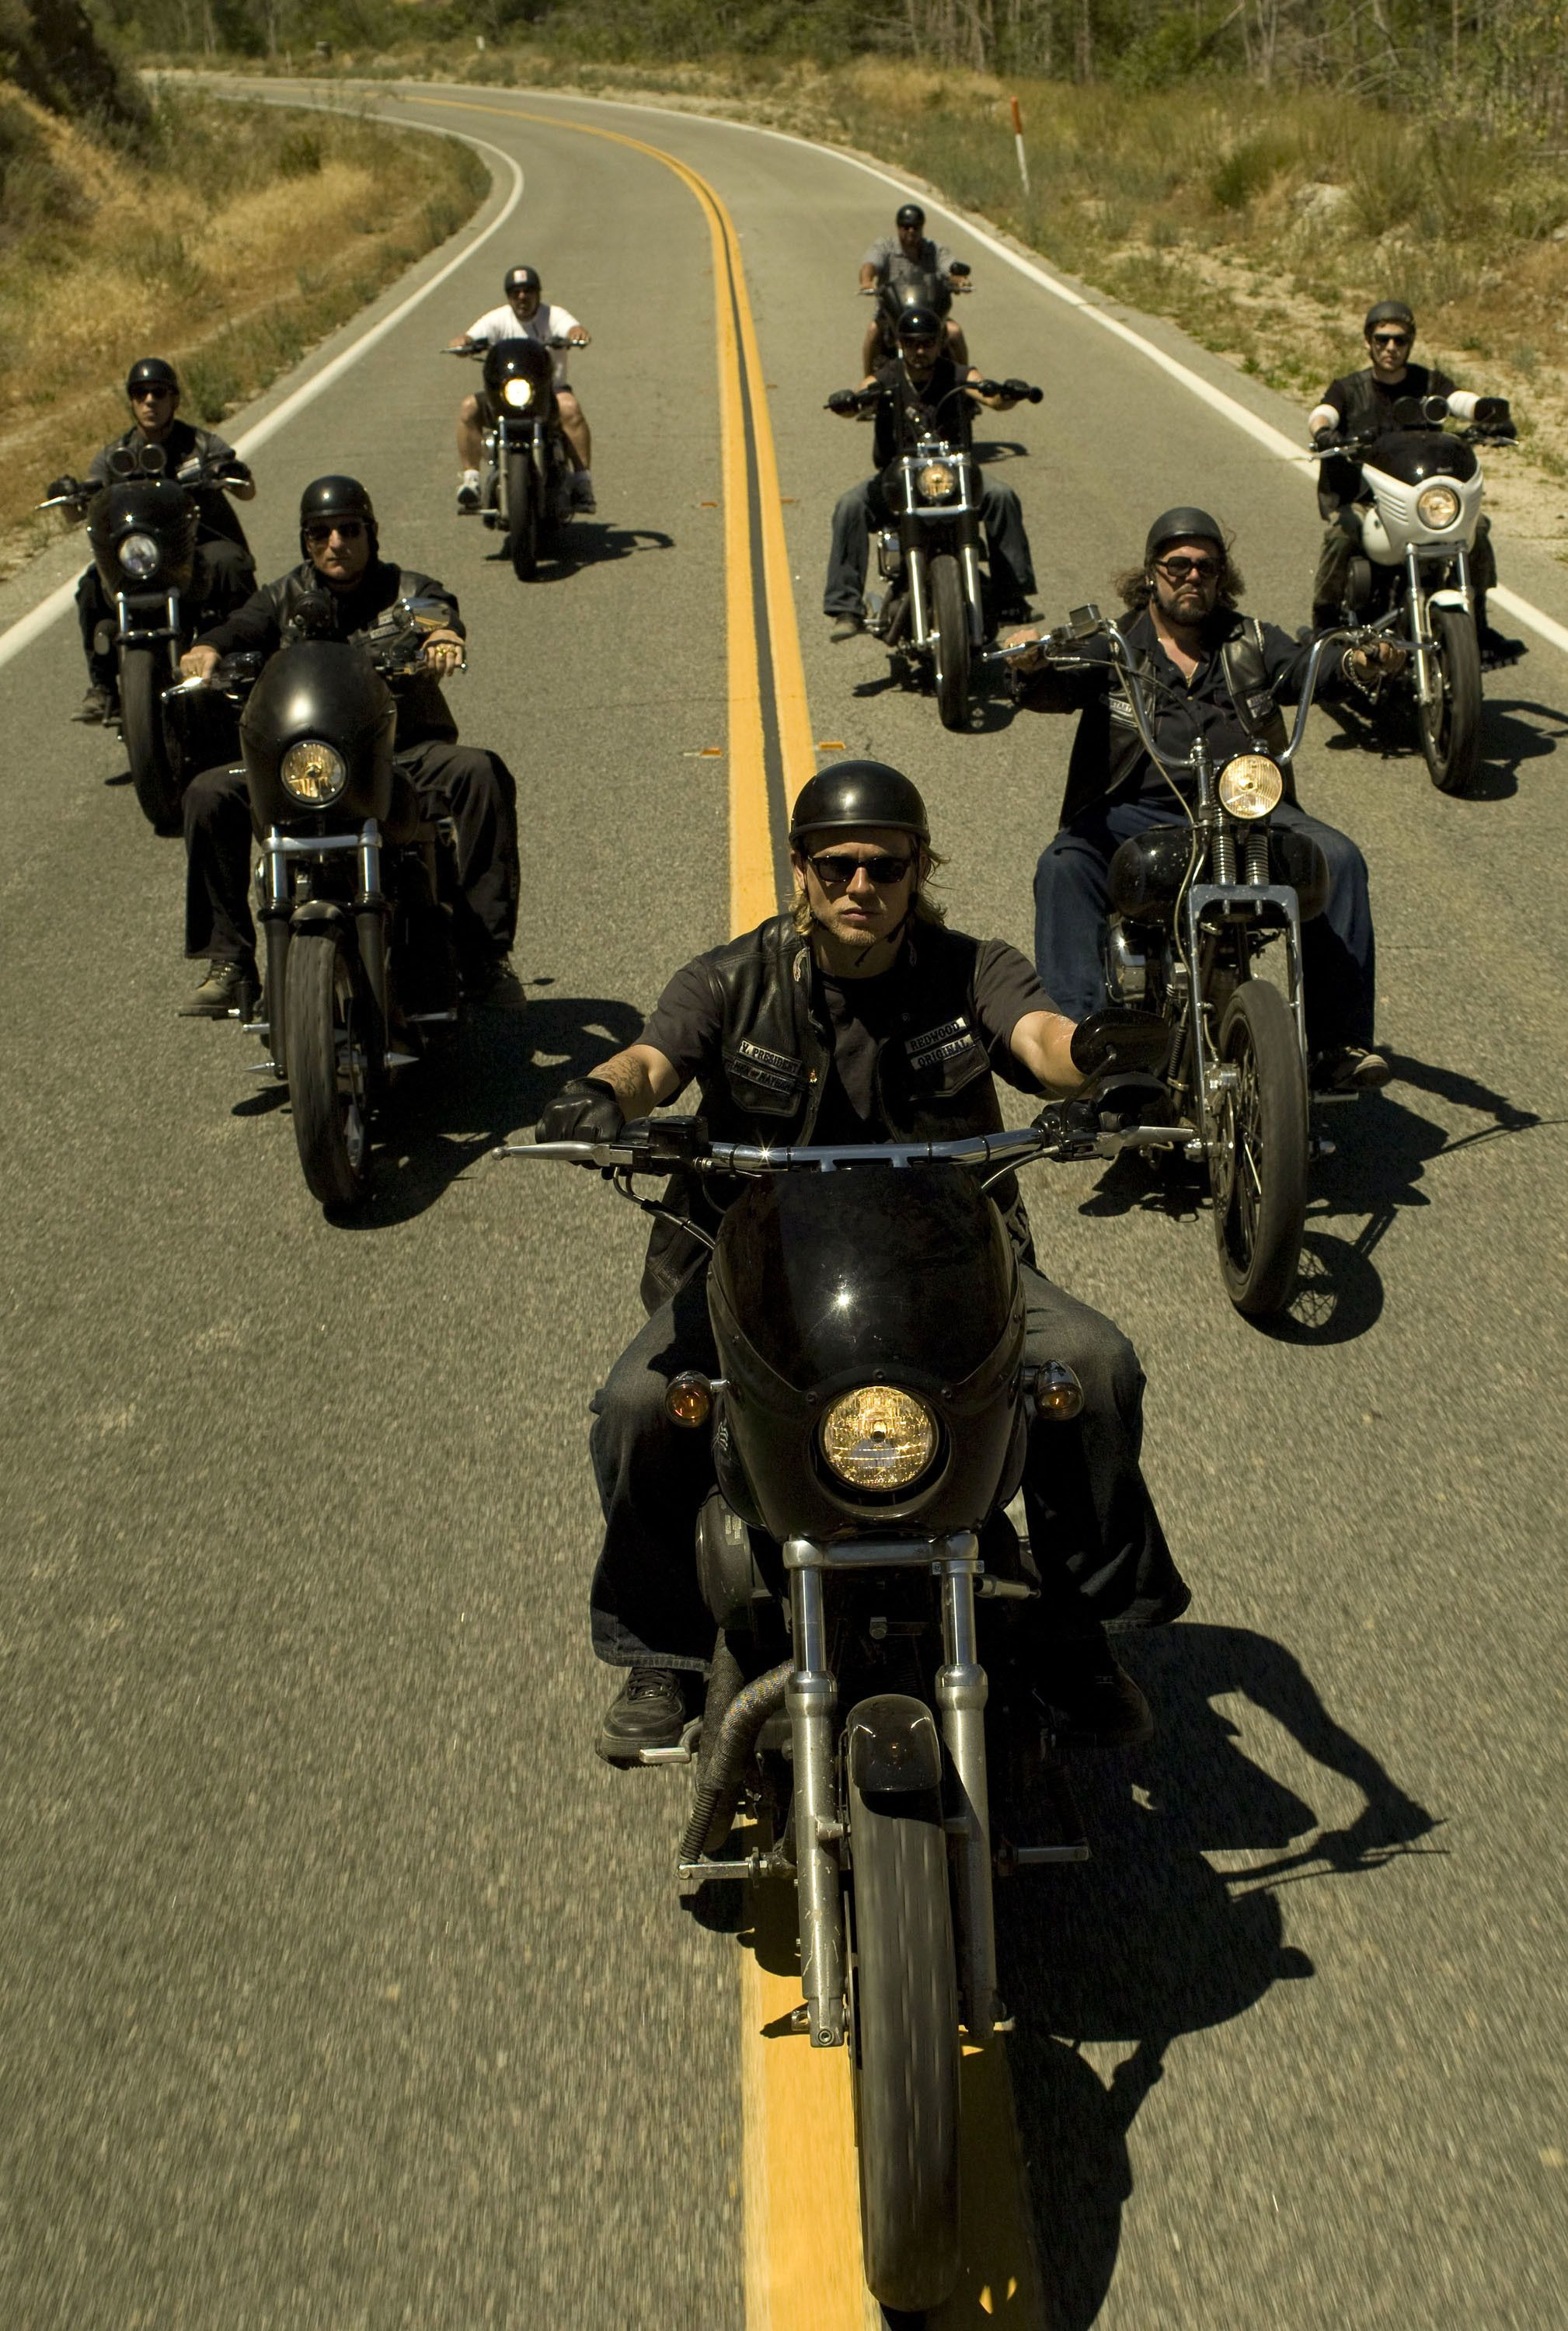 Pin By Ammar Hajibrahim On Sons Of Anarchy In 2020 Sons Of